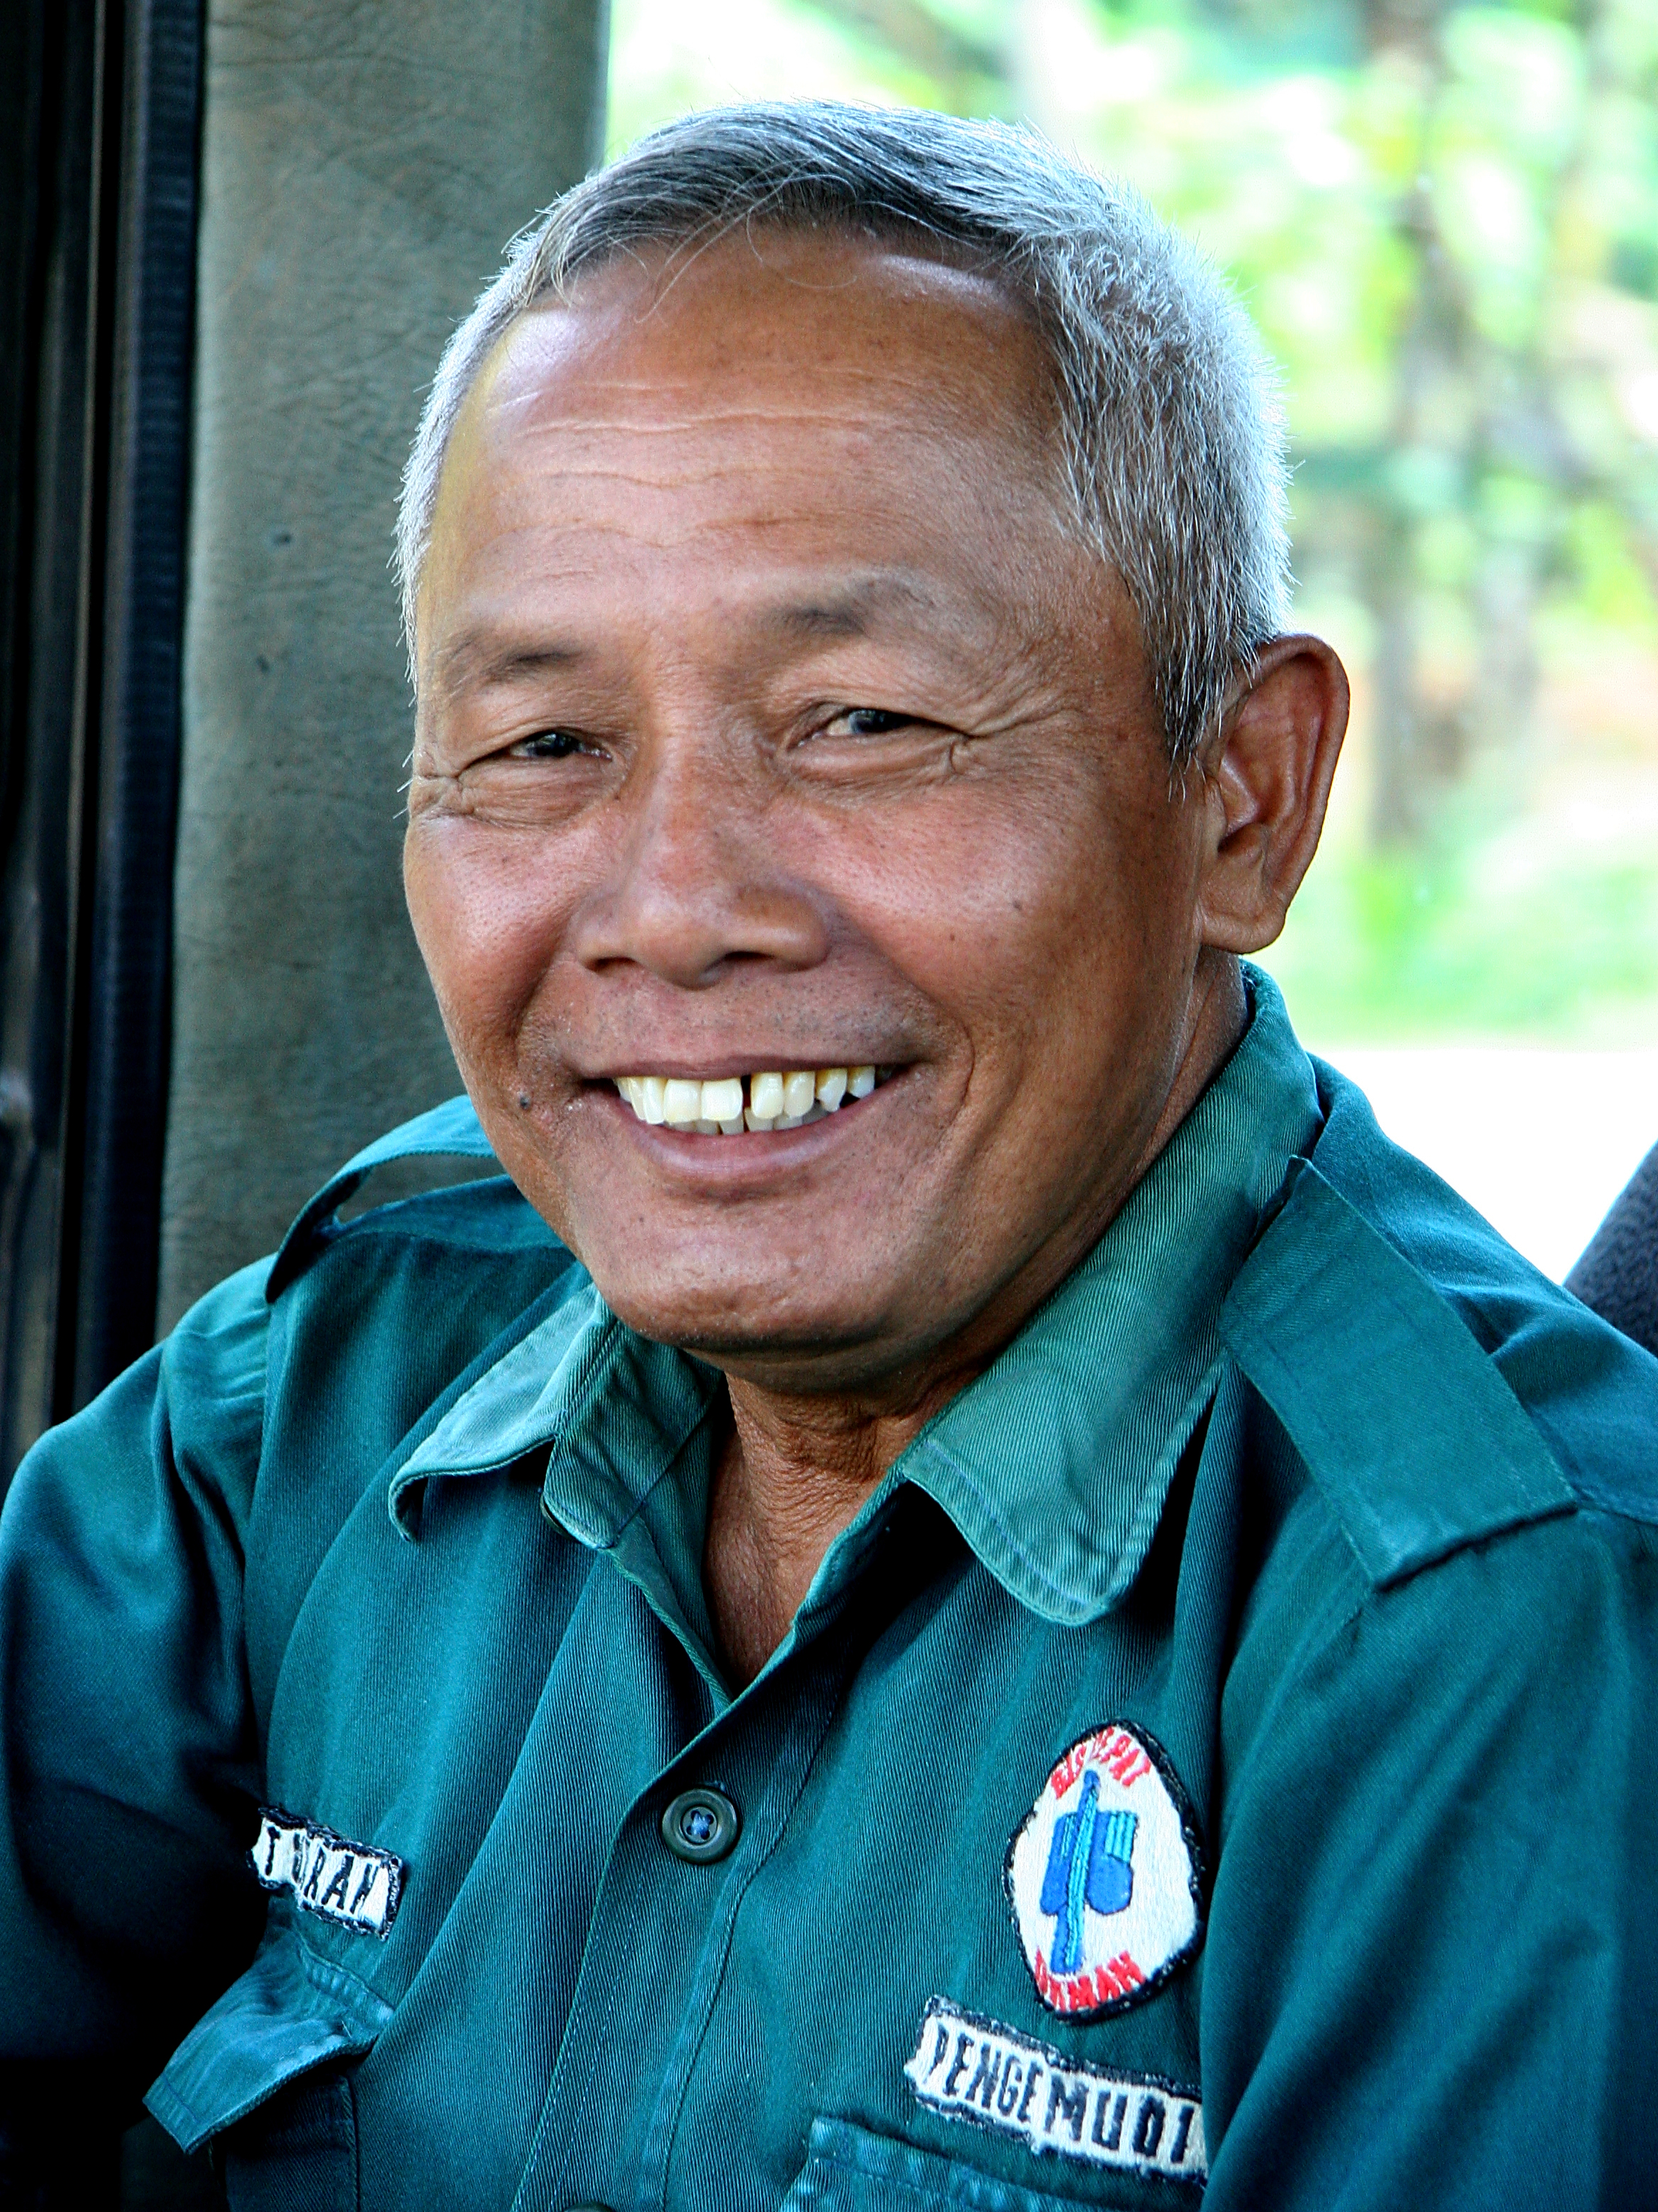 Bus driver, Java Indonesia.jpg - Indonesia Java. Bus driver